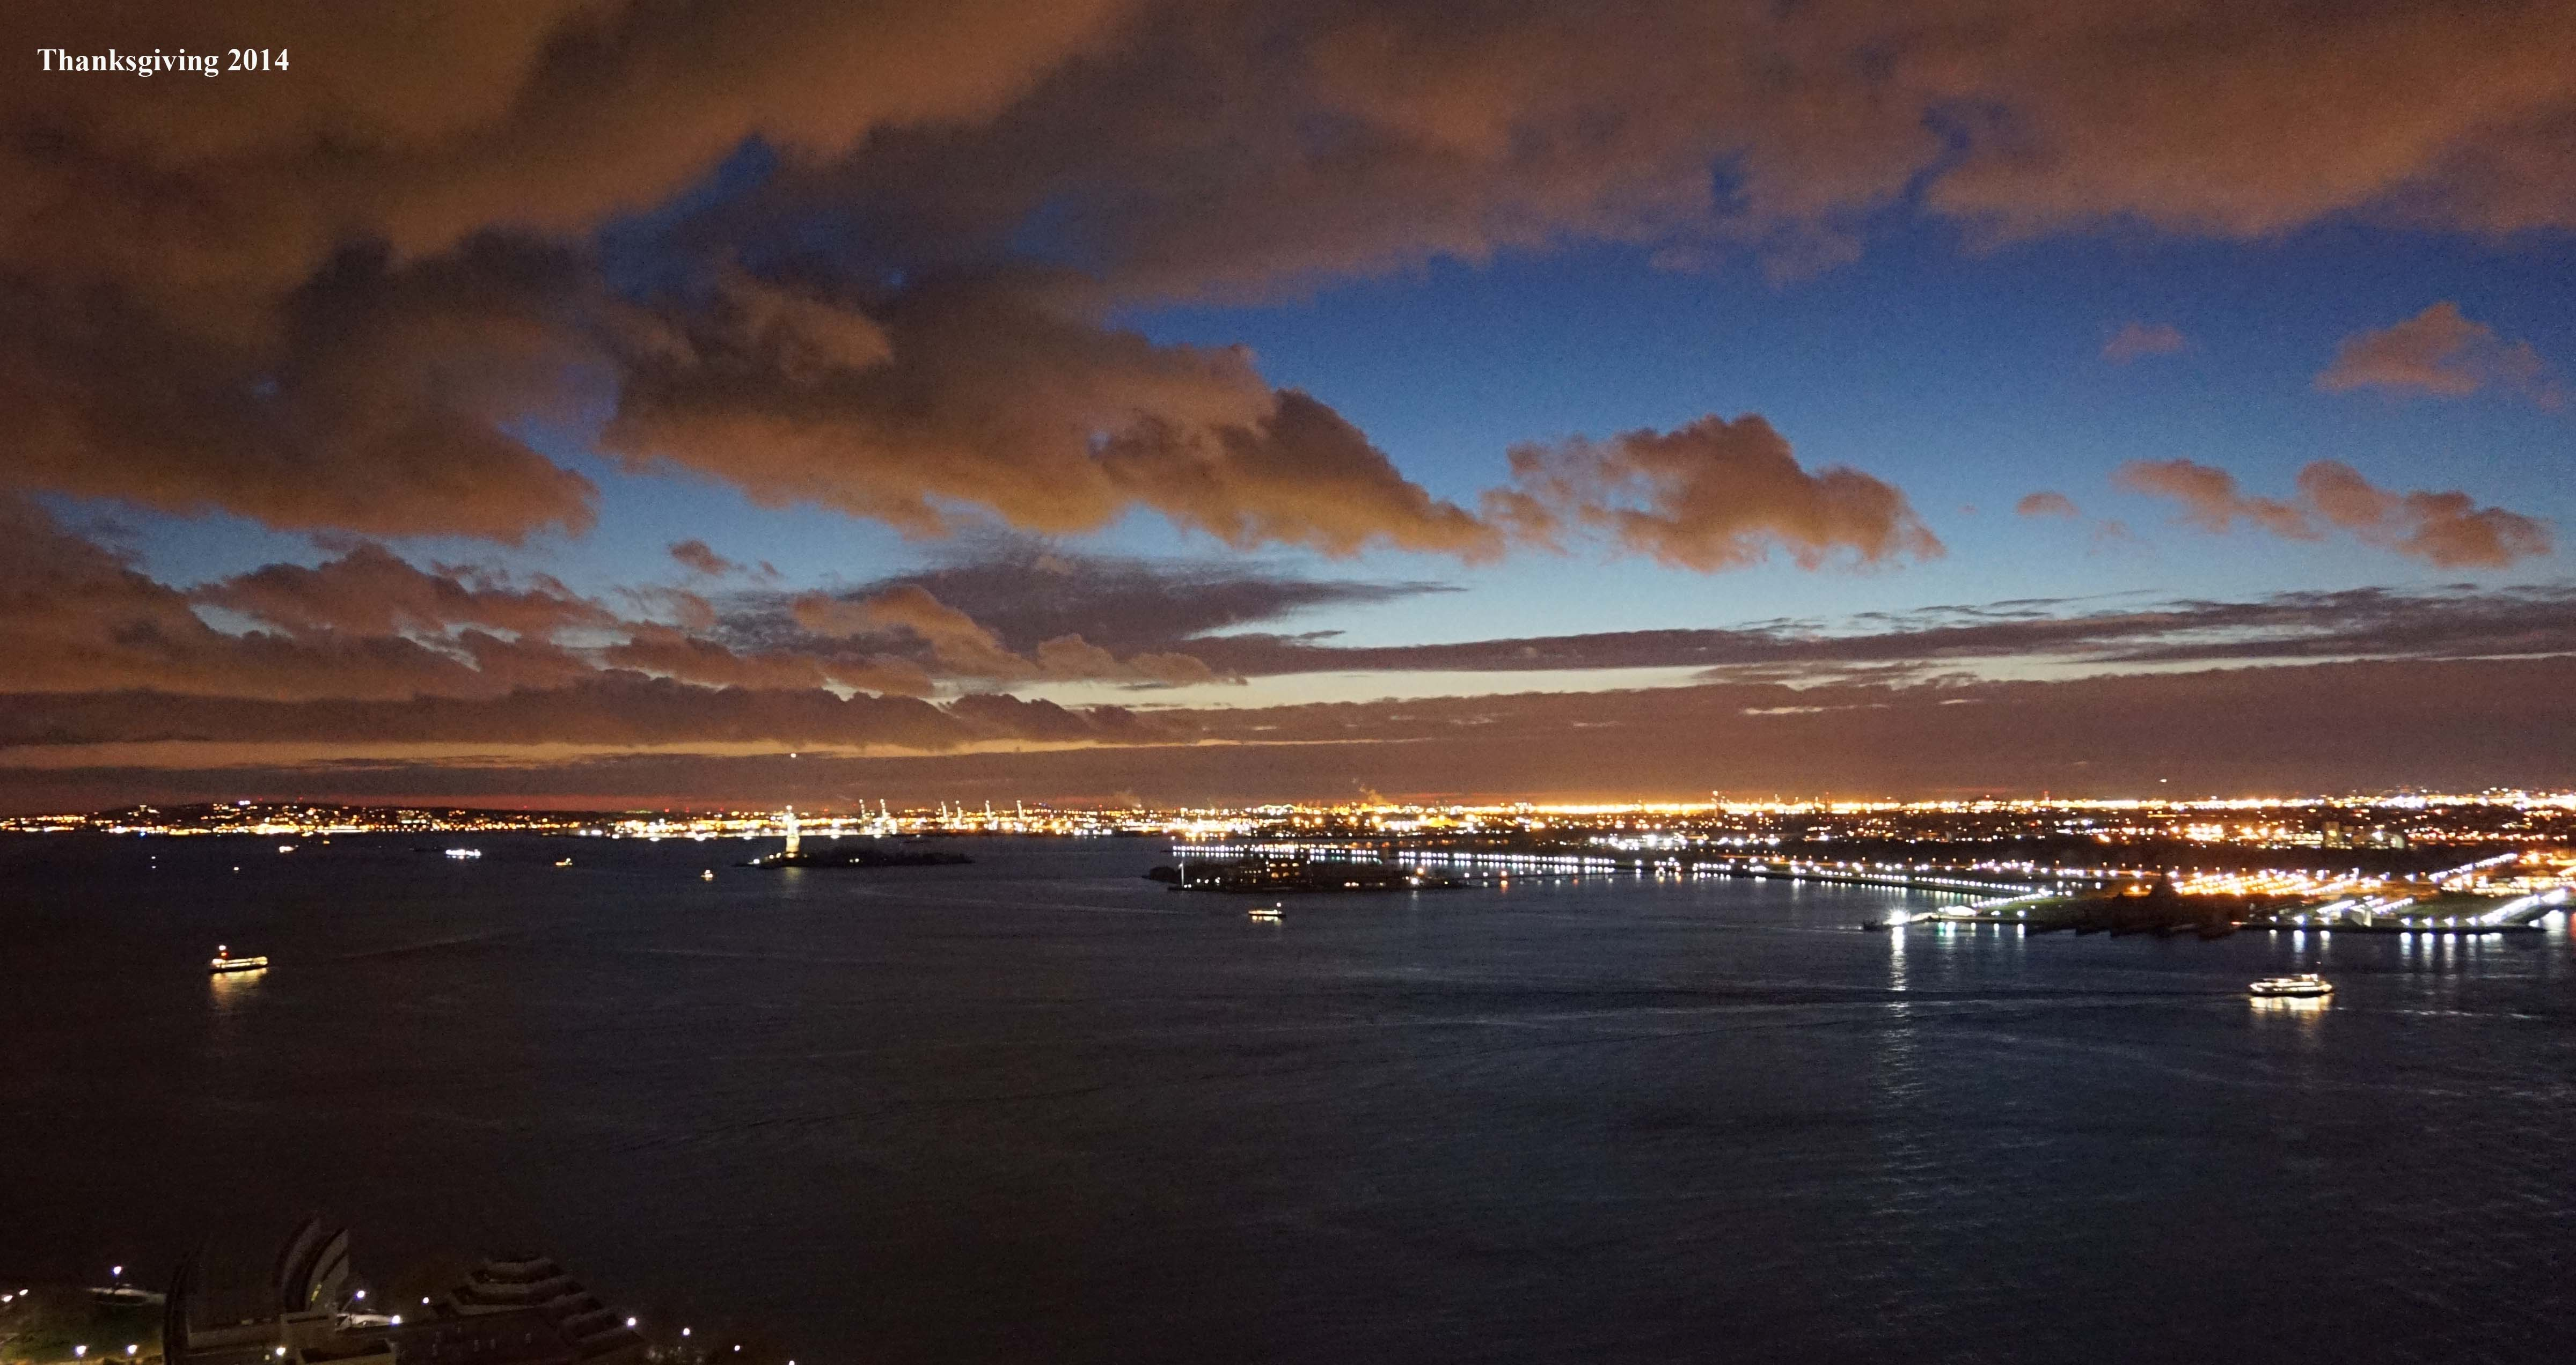 Sunset over New York Harbor Thanksgiving night 11-27-2014 low